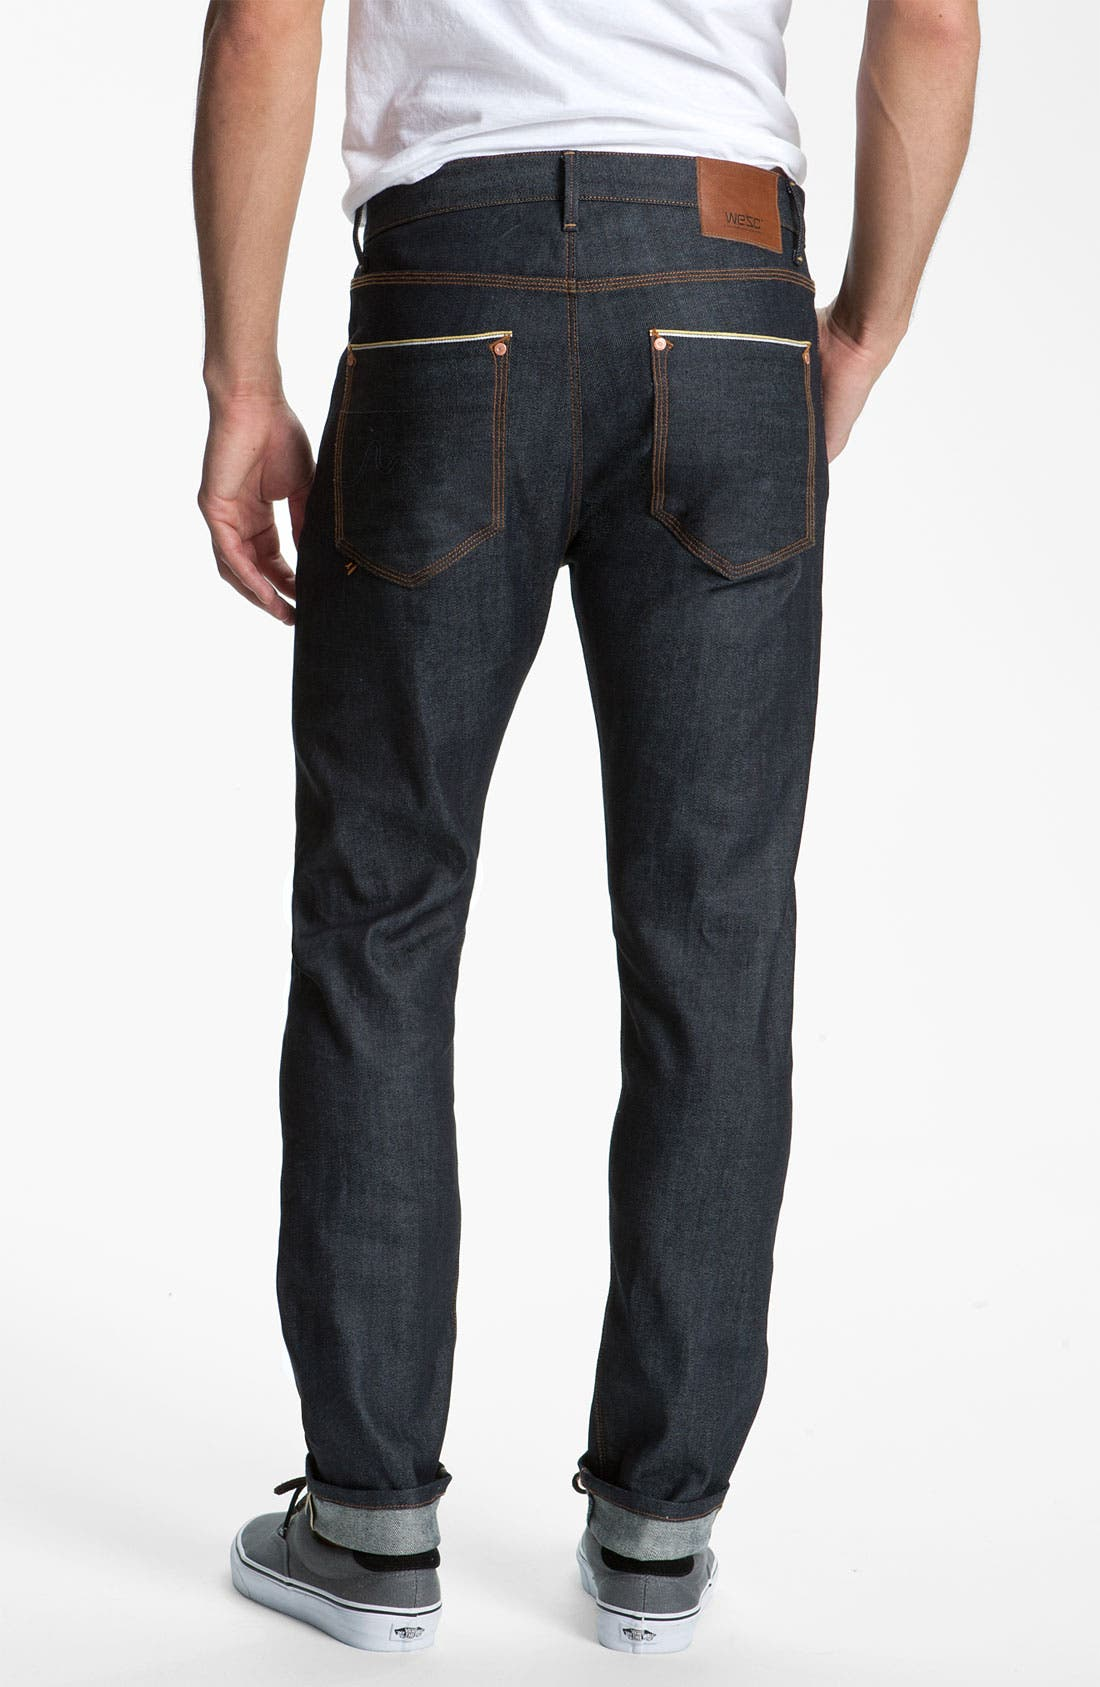 Main Image - WeSC 'Eddy' Slim Fit Jeans (Raw Stretch Selvage)